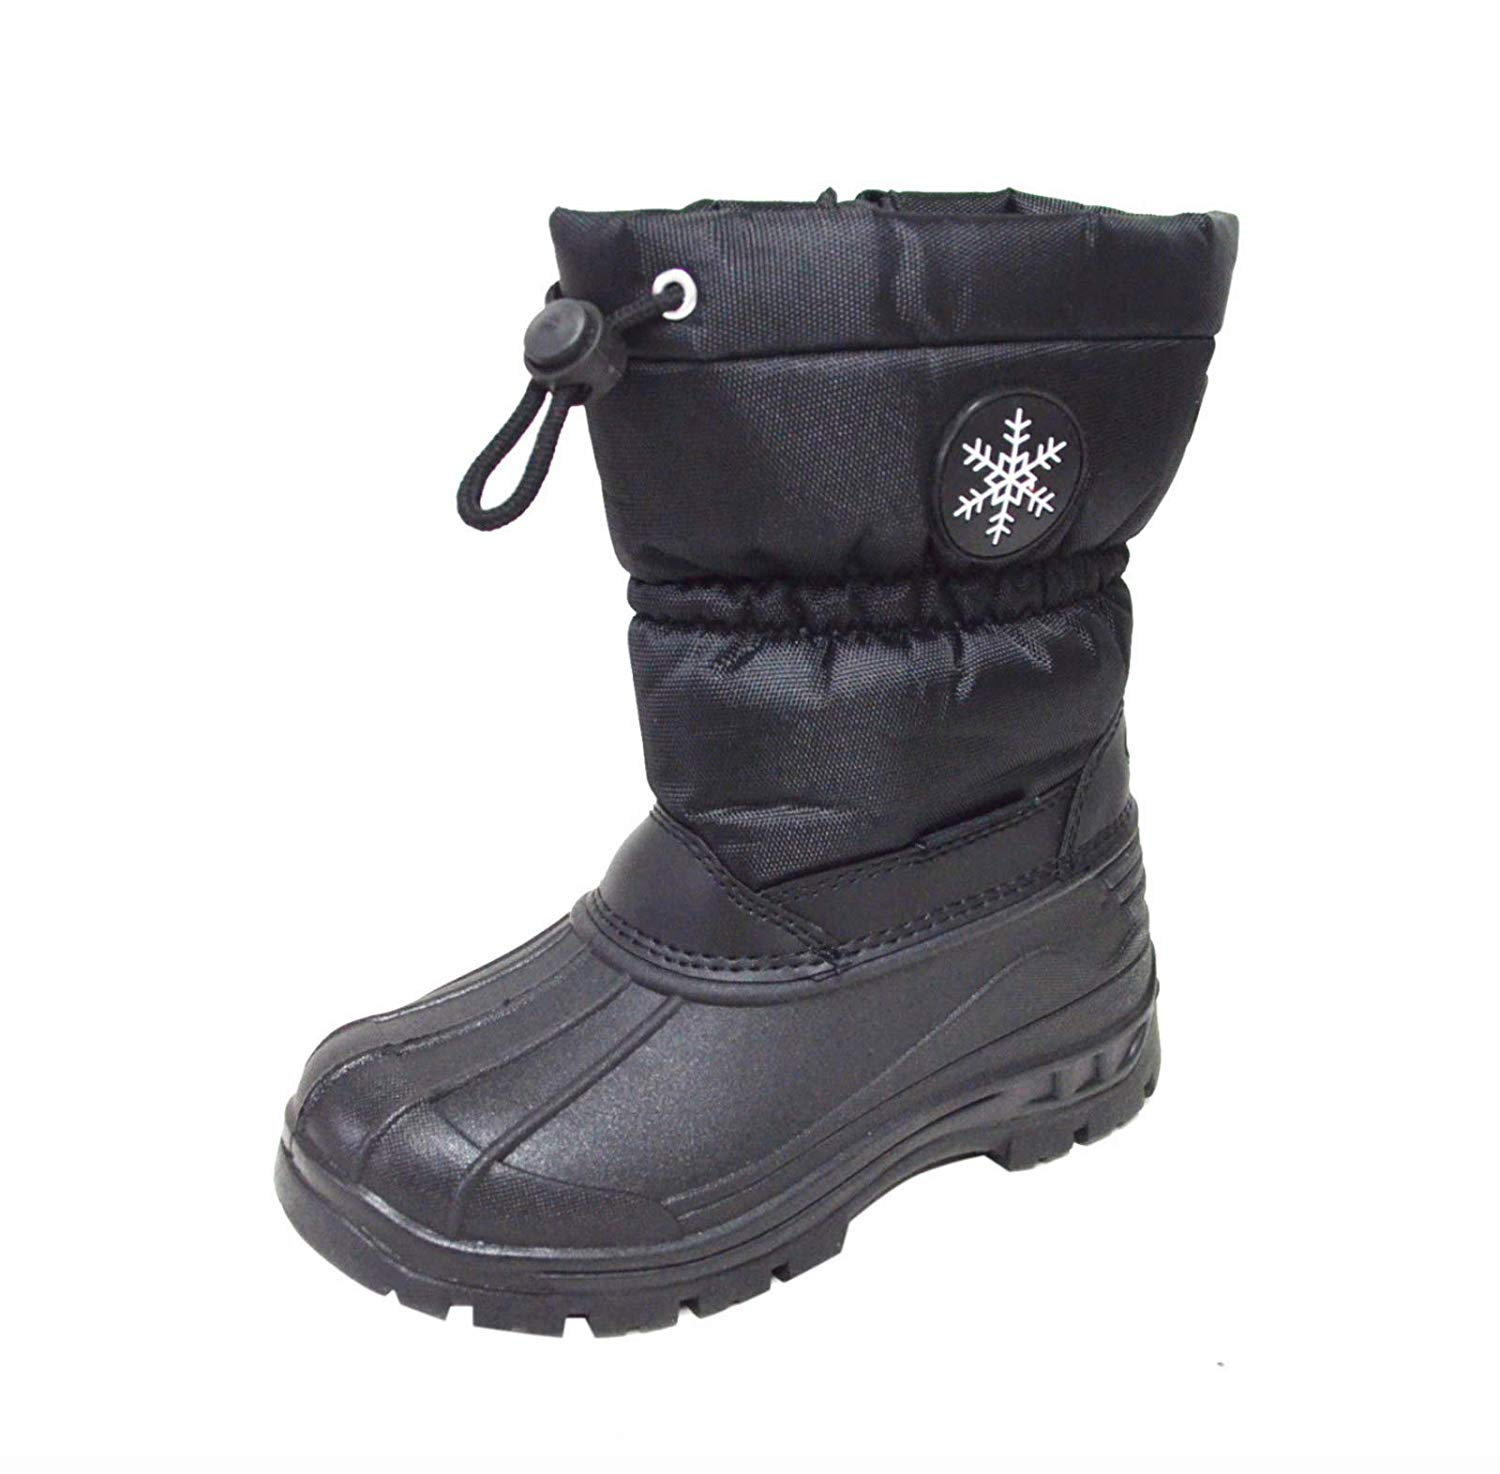 Happy Bull Winter Snow Boots for Kids Girls Boys Black Water Resistant Insulated Cold Weather Shoes (BABY1/3)